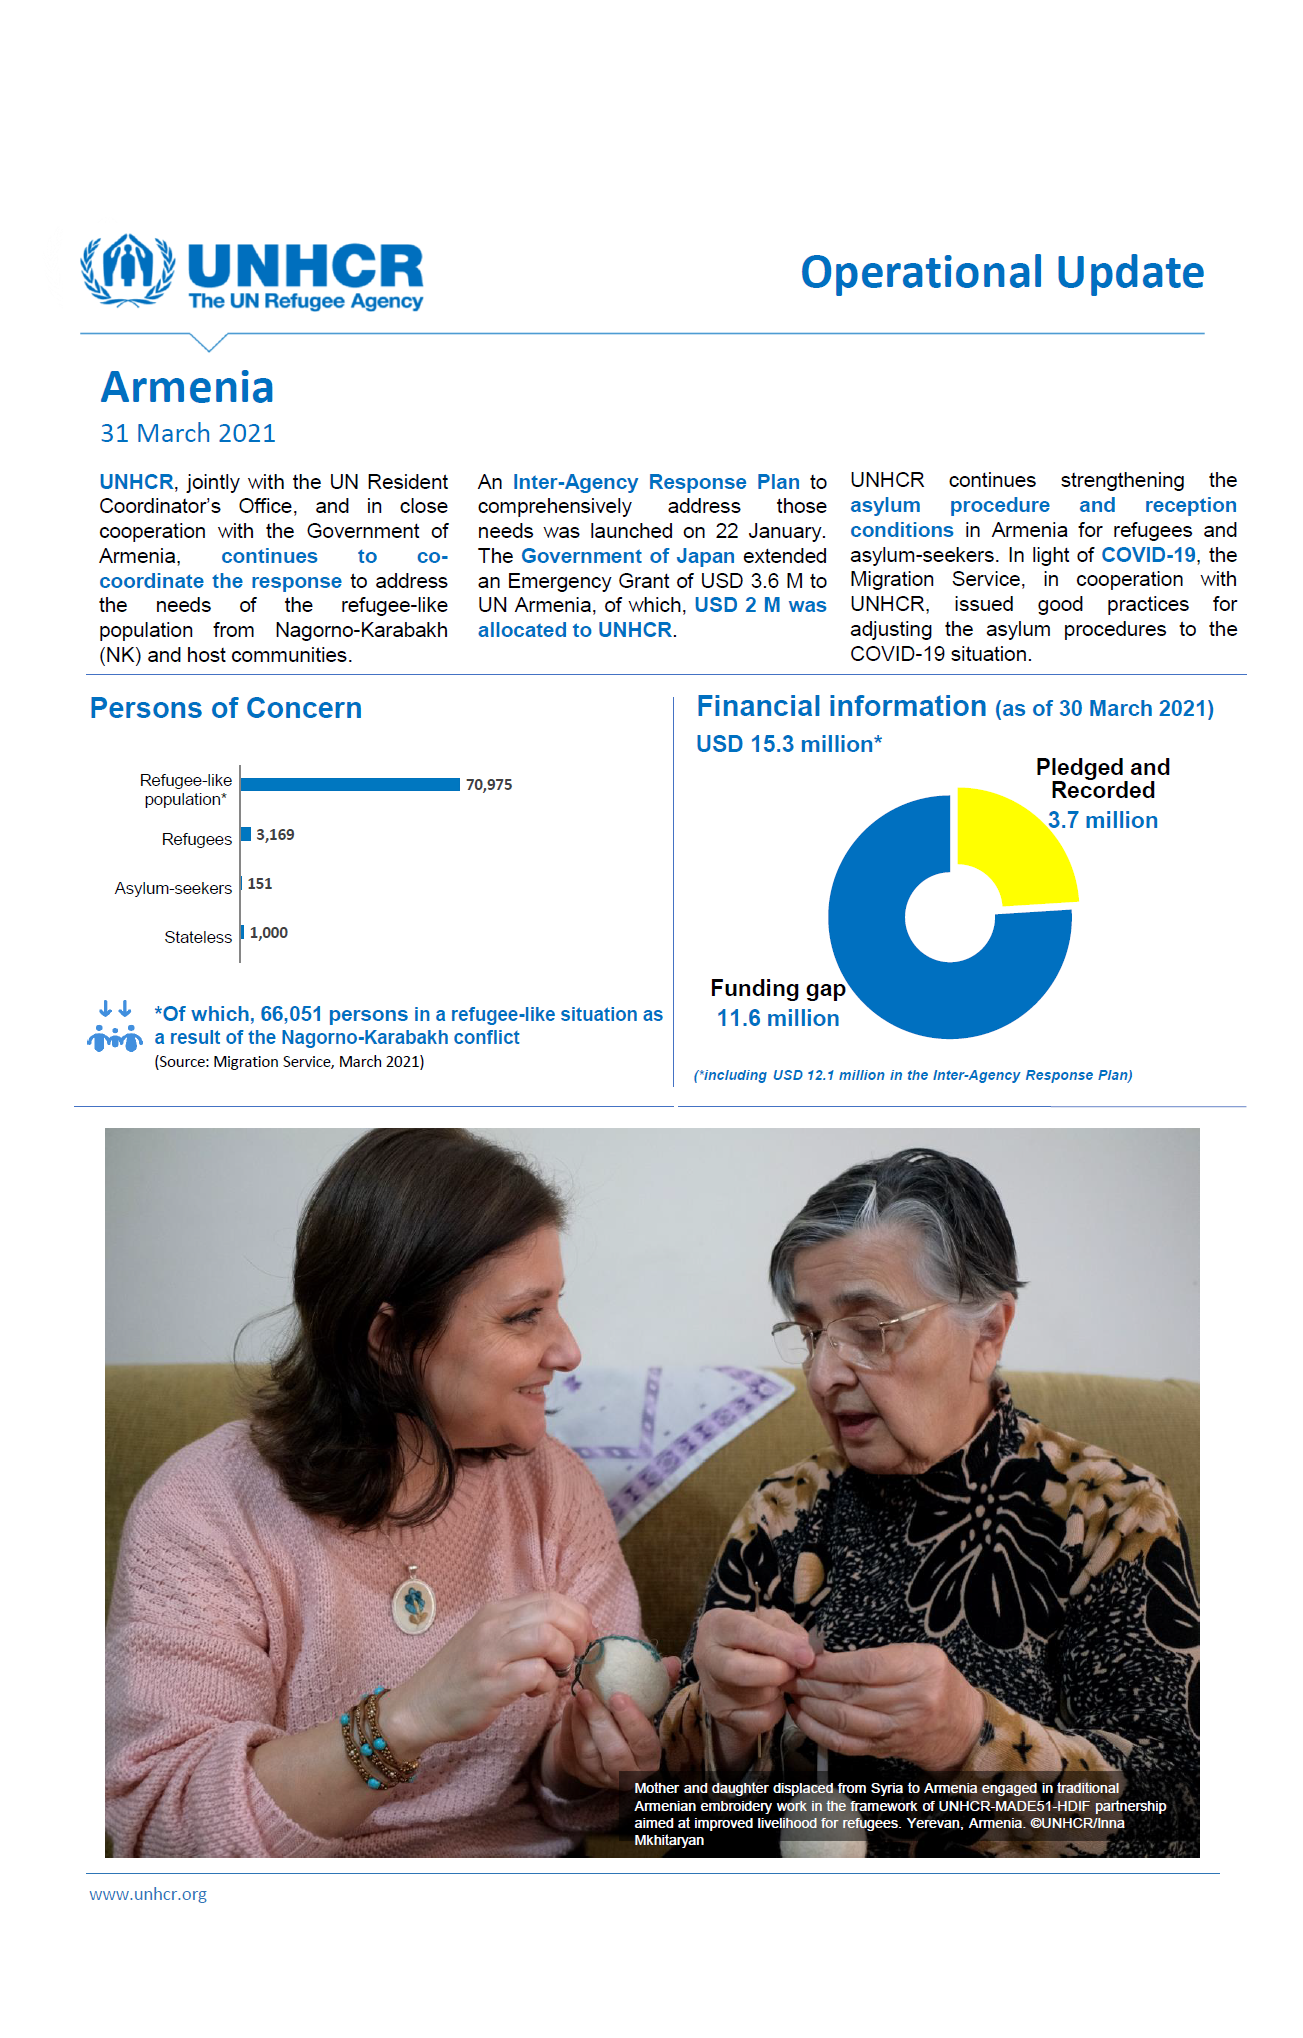 UNHCR Armenia Operational Update's cover page for January-March 2021.